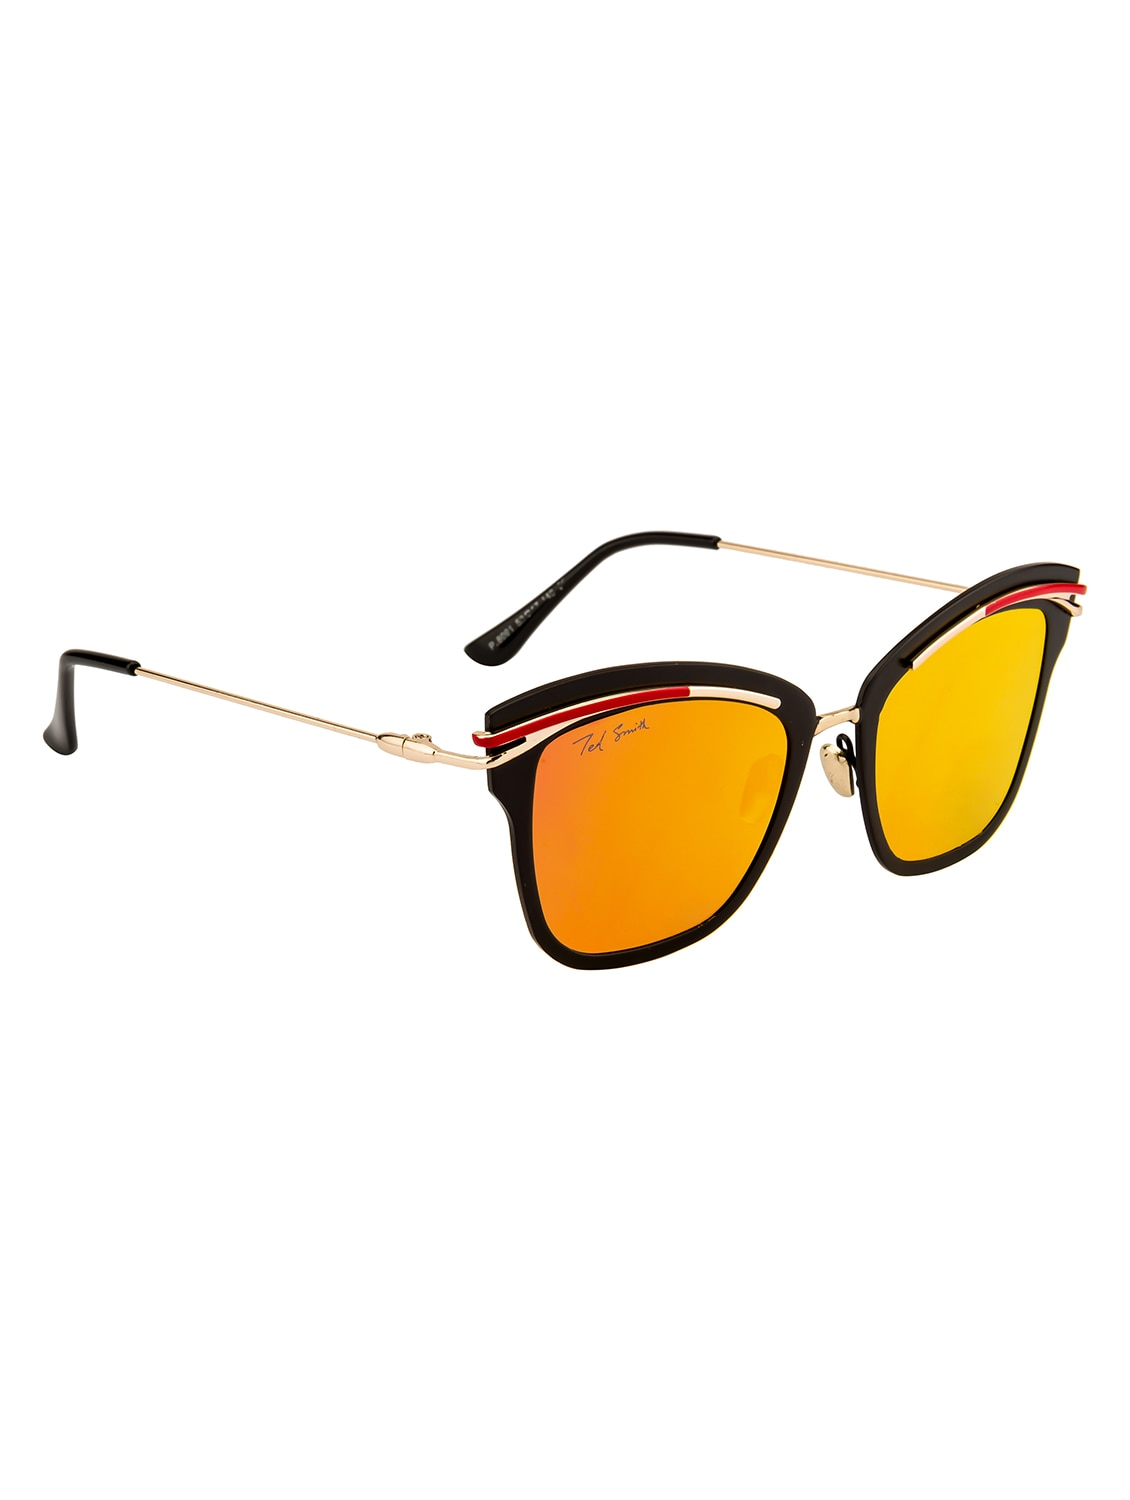 0c01303277d Buy Ted Smith Women Square Gold With Black Polarized Sunglasses by Ted Smith  - Online shopping for Sunglasses in India